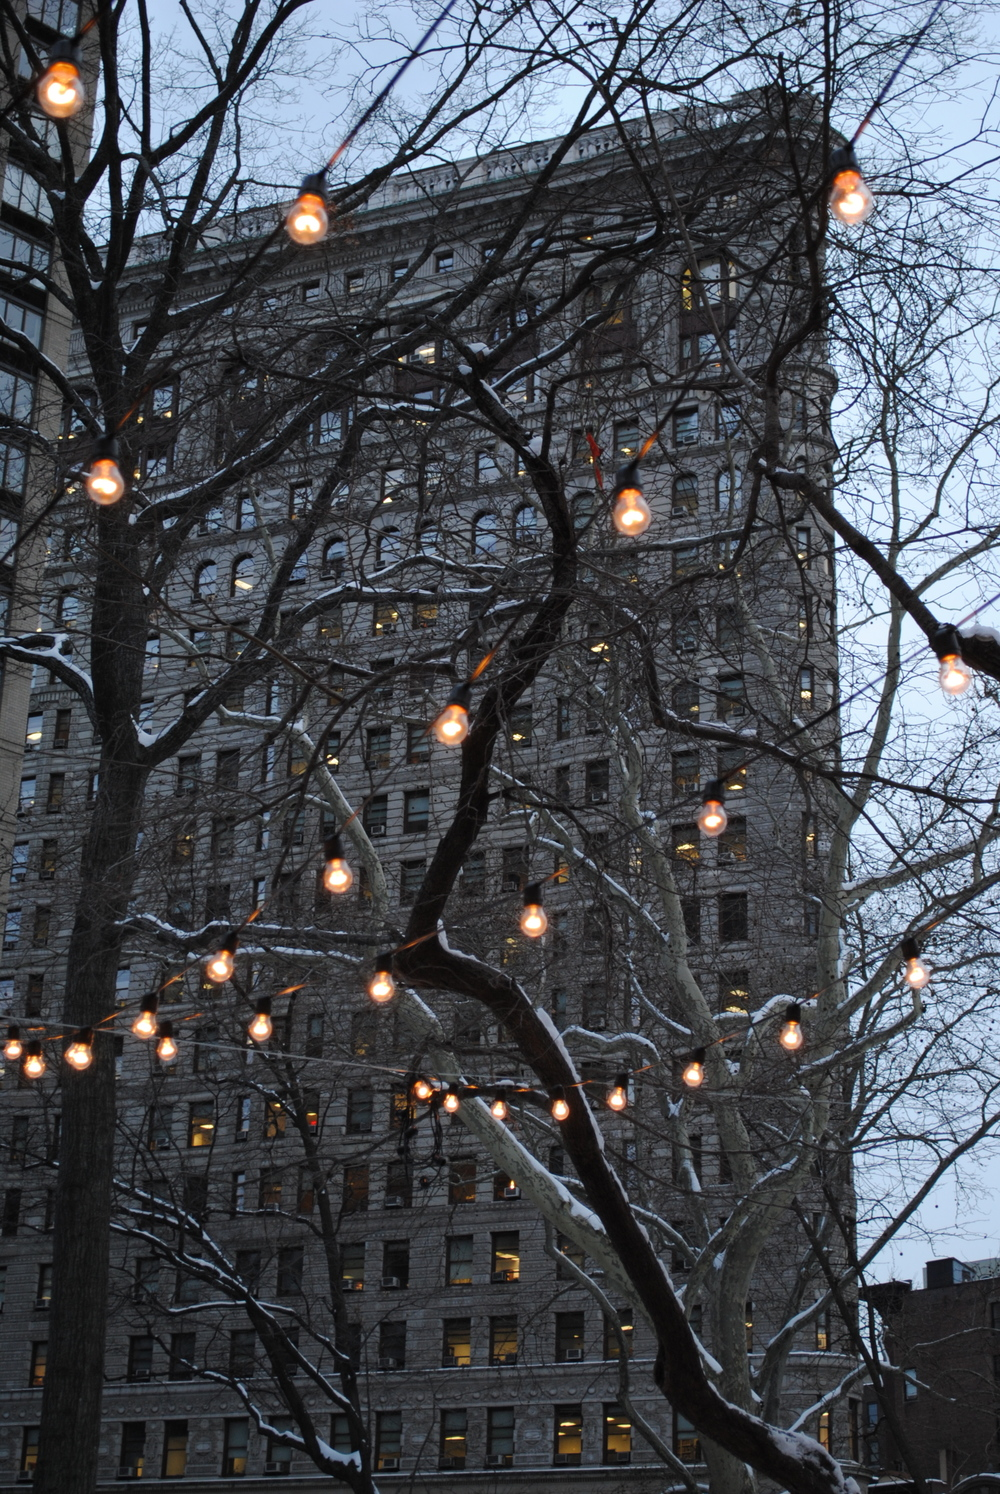 Fairylight-Twilight Flatiron , Madison Square Park NYC, December 2010